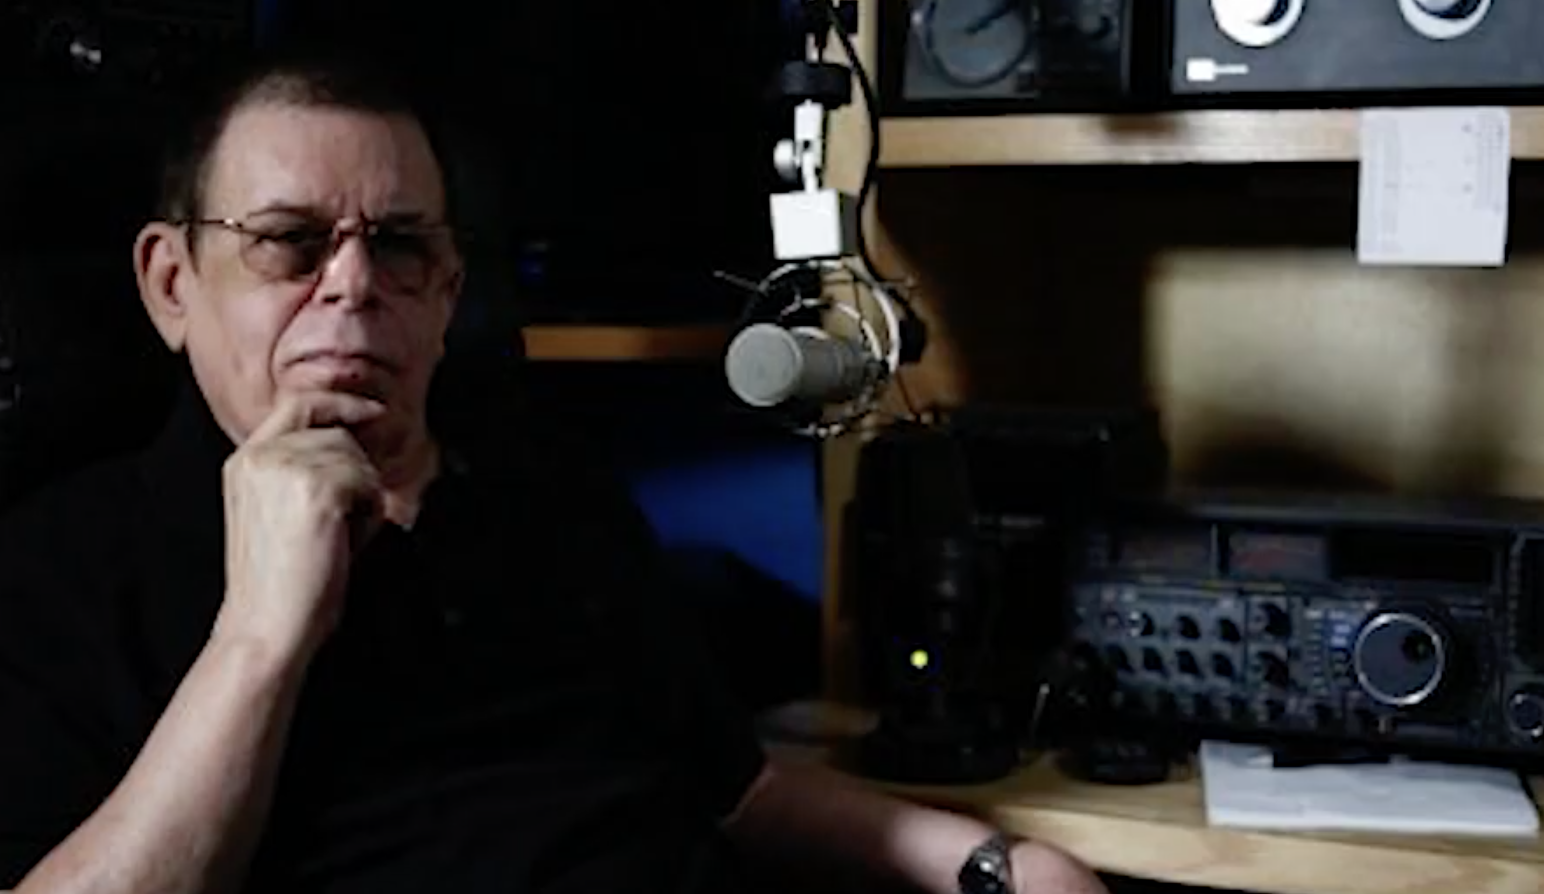 Art Bell (1945 - 2018), paranormal-themed radio show host